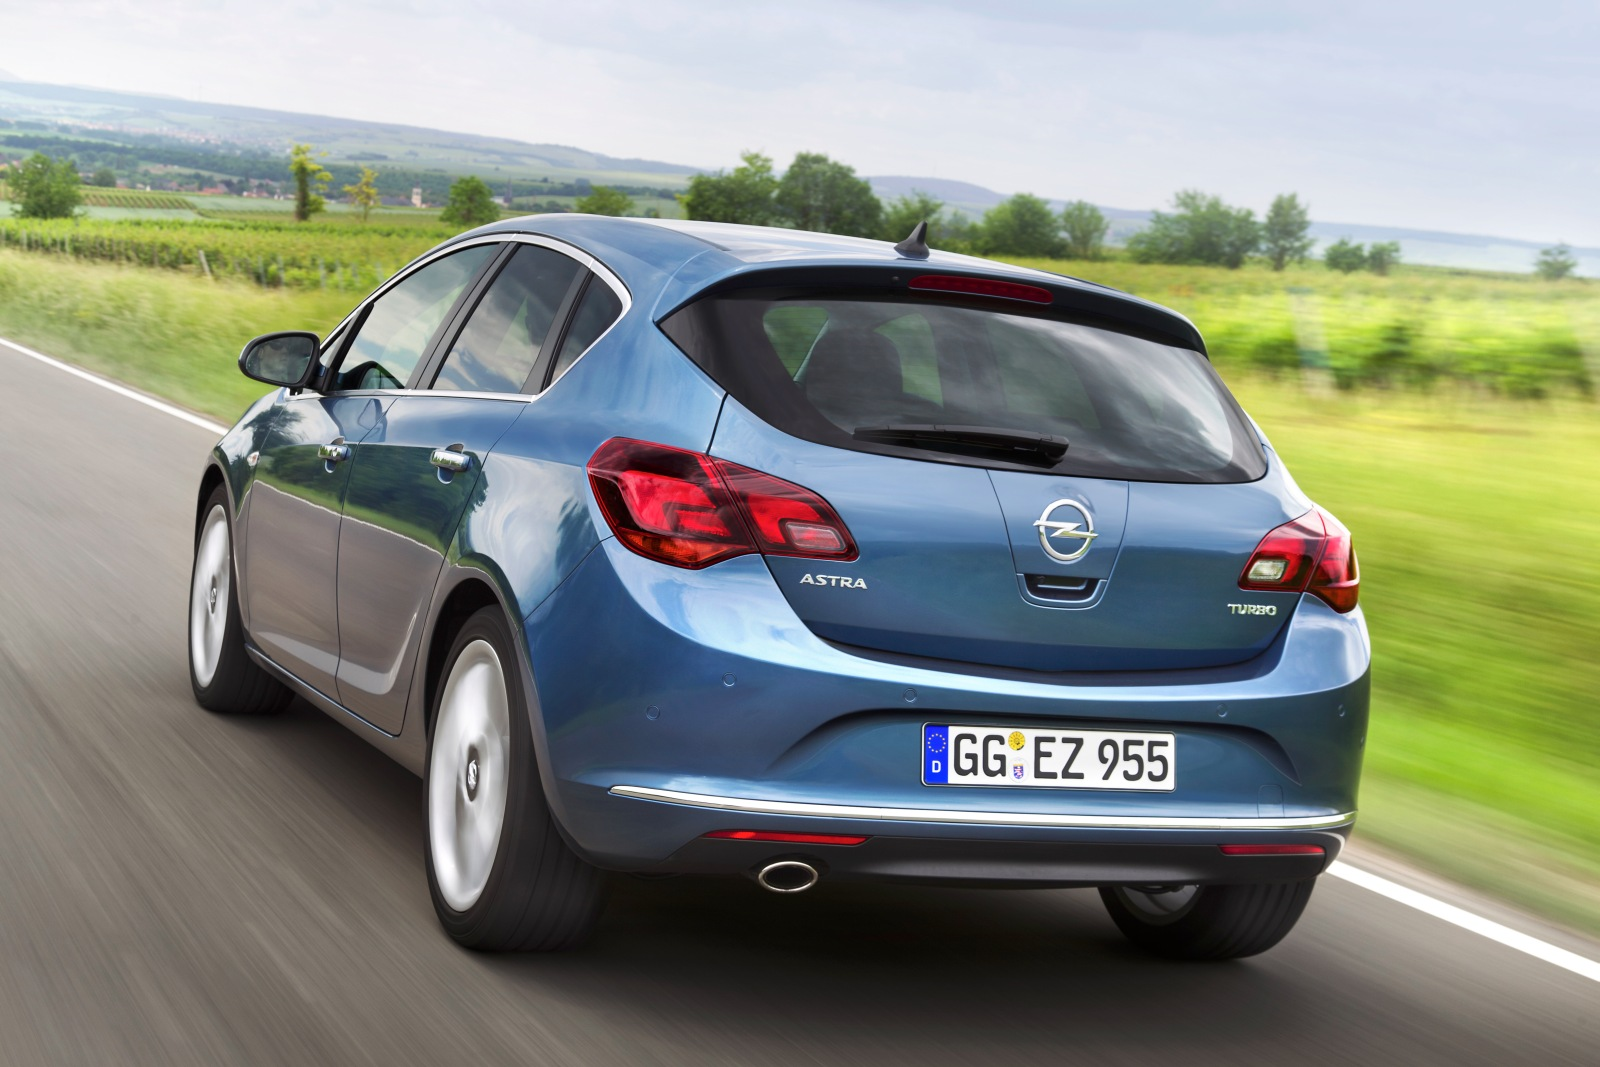 opel astra e astra sports tourer facelift 2012 opel autopareri. Black Bedroom Furniture Sets. Home Design Ideas